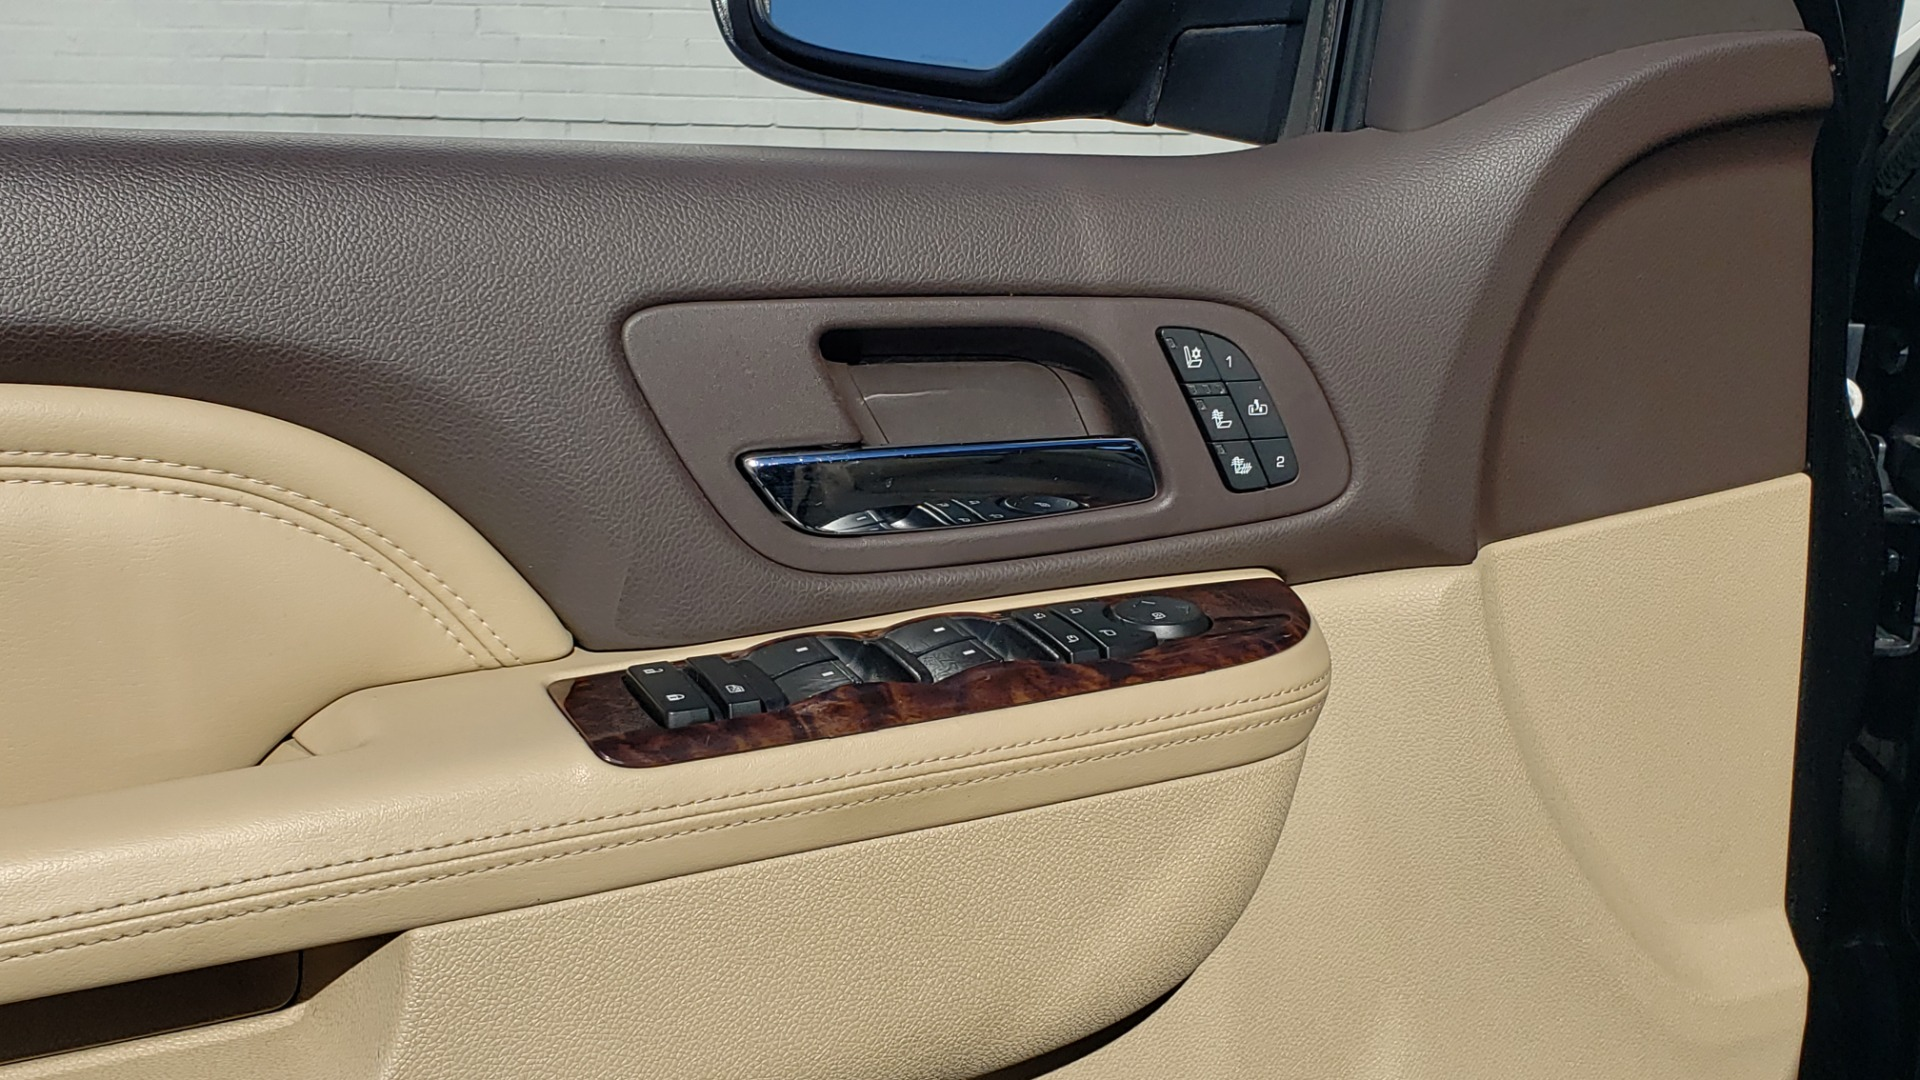 Used 2013 GMC YUKON XL DENALI / AWD / NAV / SUNROOF / 3-ROW / ENTERTAINMENT for sale Sold at Formula Imports in Charlotte NC 28227 32